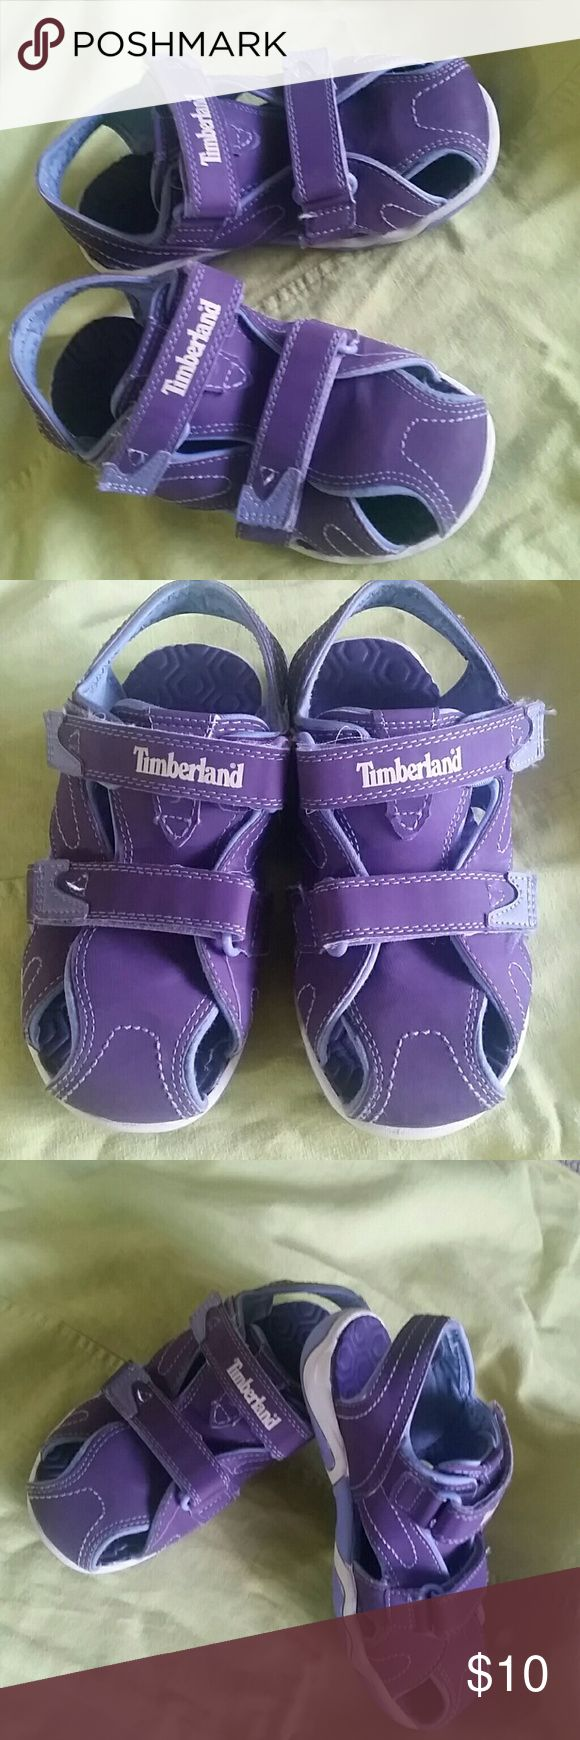 TIMBERLAND GIRLS PURPLE SANDALS TIMBERLAND PURPLE GIRLS SANDALS SIZE 13 Mint like new condition. FREE GIFT INCLUDED TIMBERLAND Shoes Sandals & Flip Flops